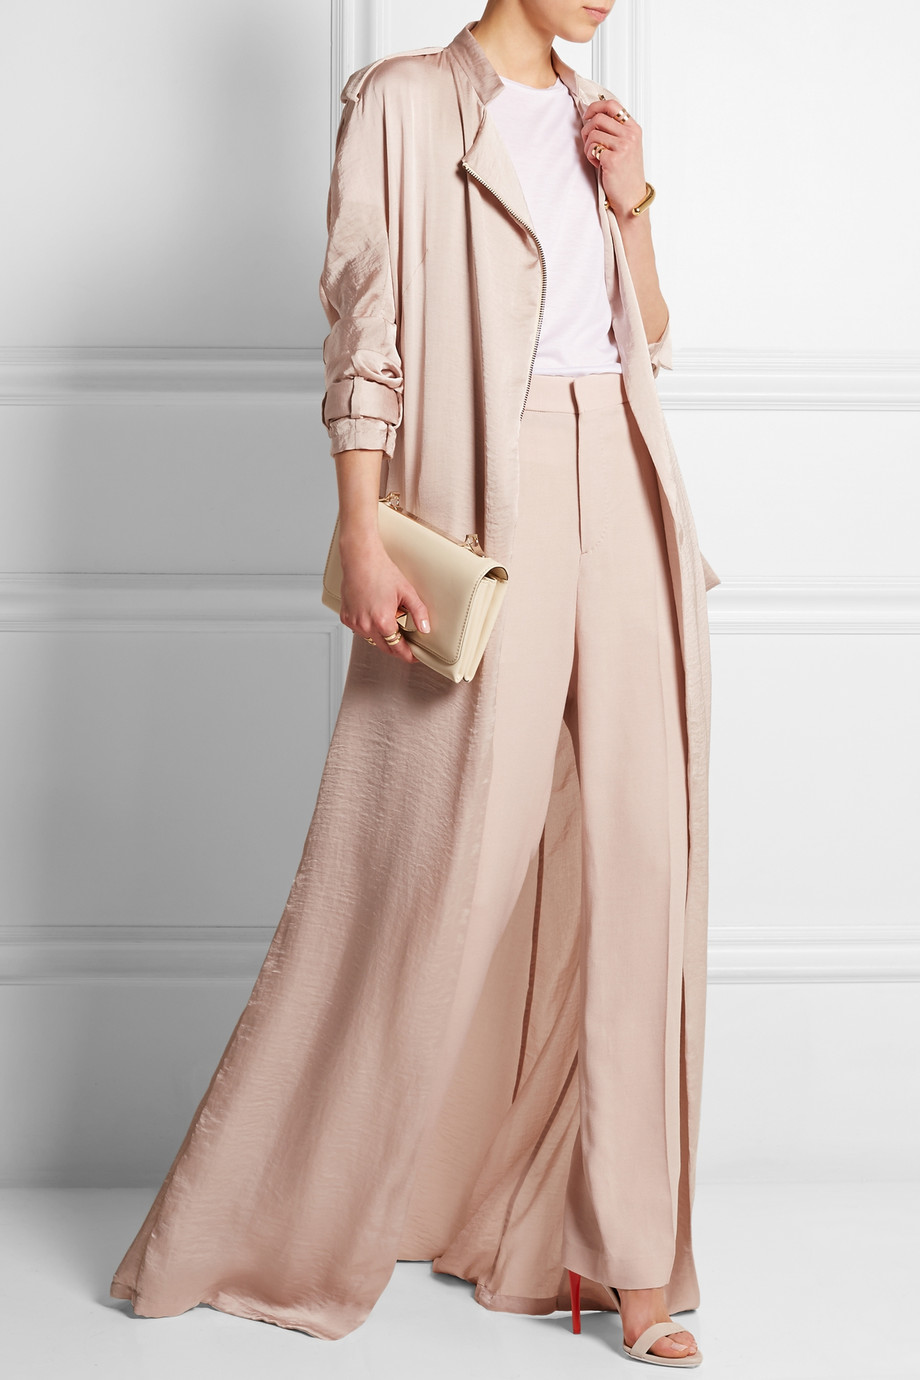 peach-wideleg-pants-mono-peach-jacket-coat-trench-spring-summer-dinner.jpg